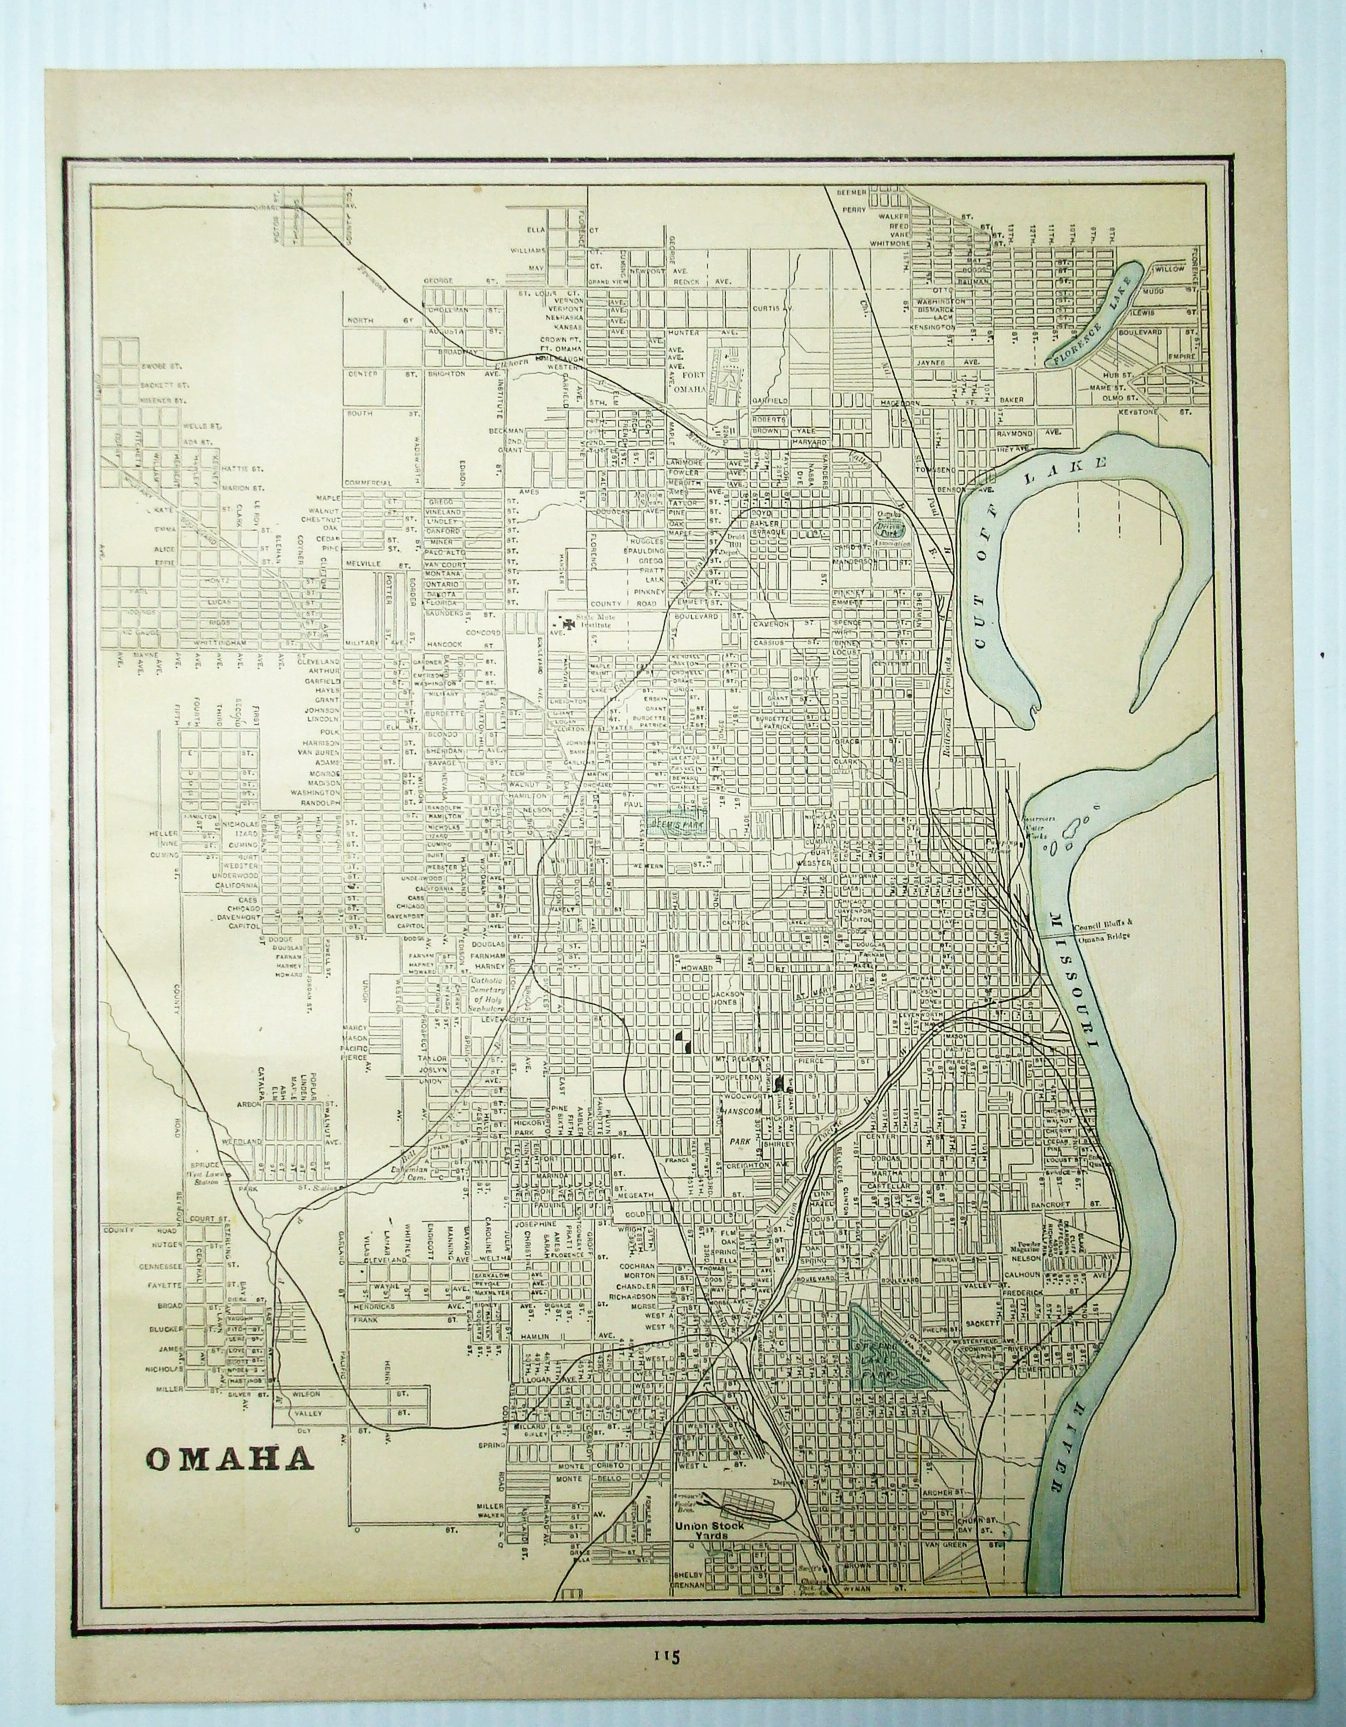 1889 Color Map of the City of Omaha,